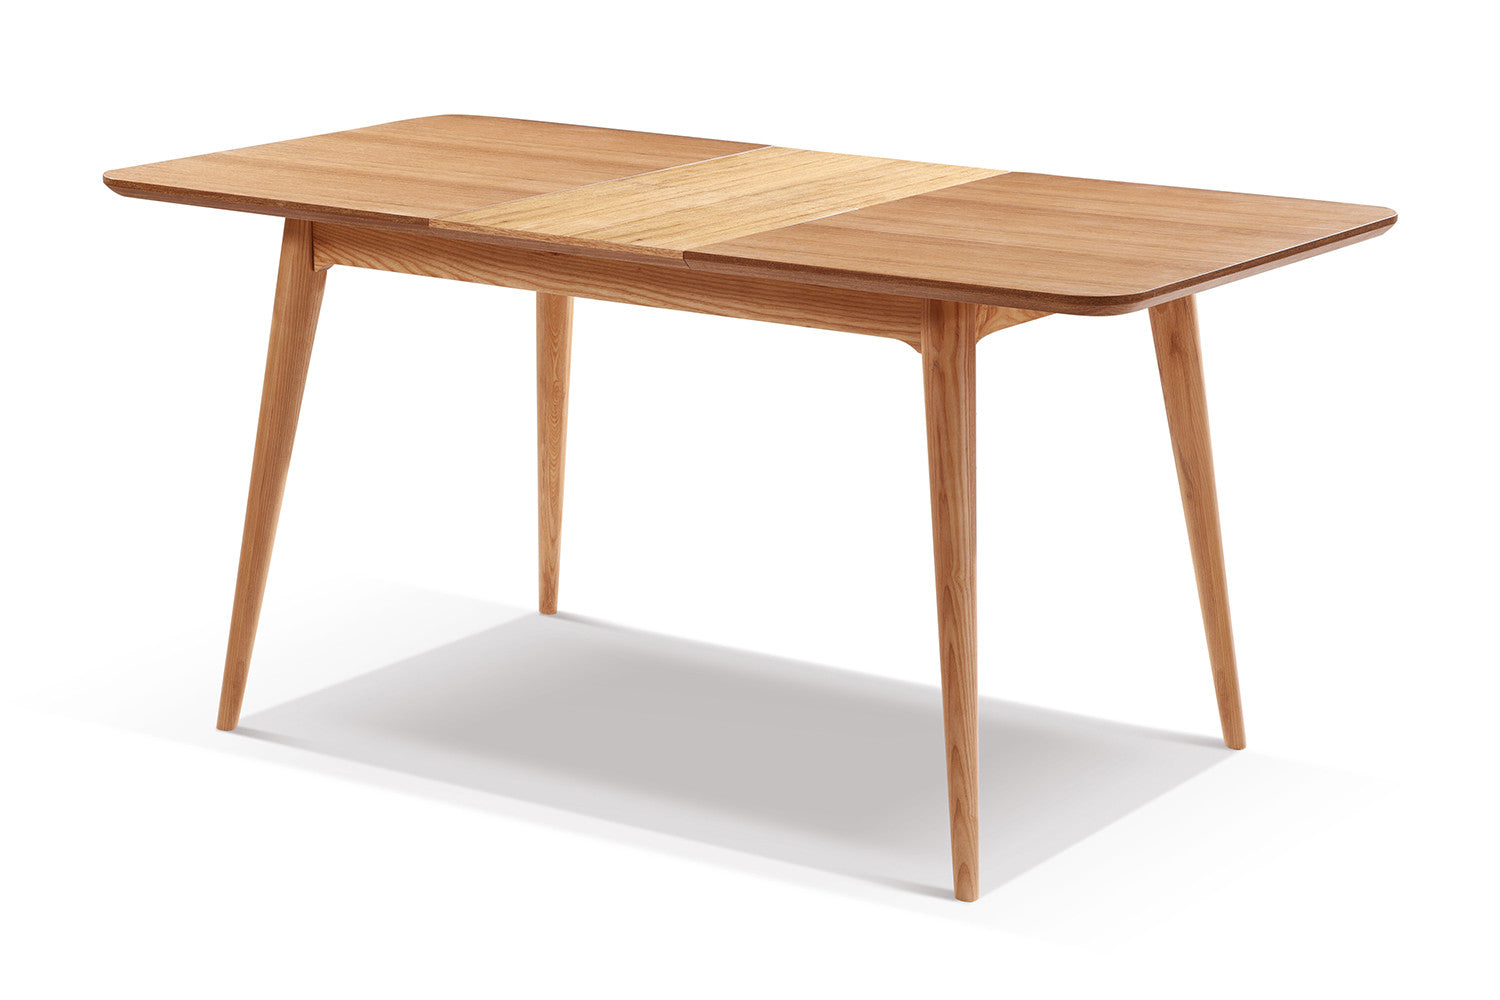 Table de salle manger extensible en bois adda dewarens for Table a rallonge scandinave